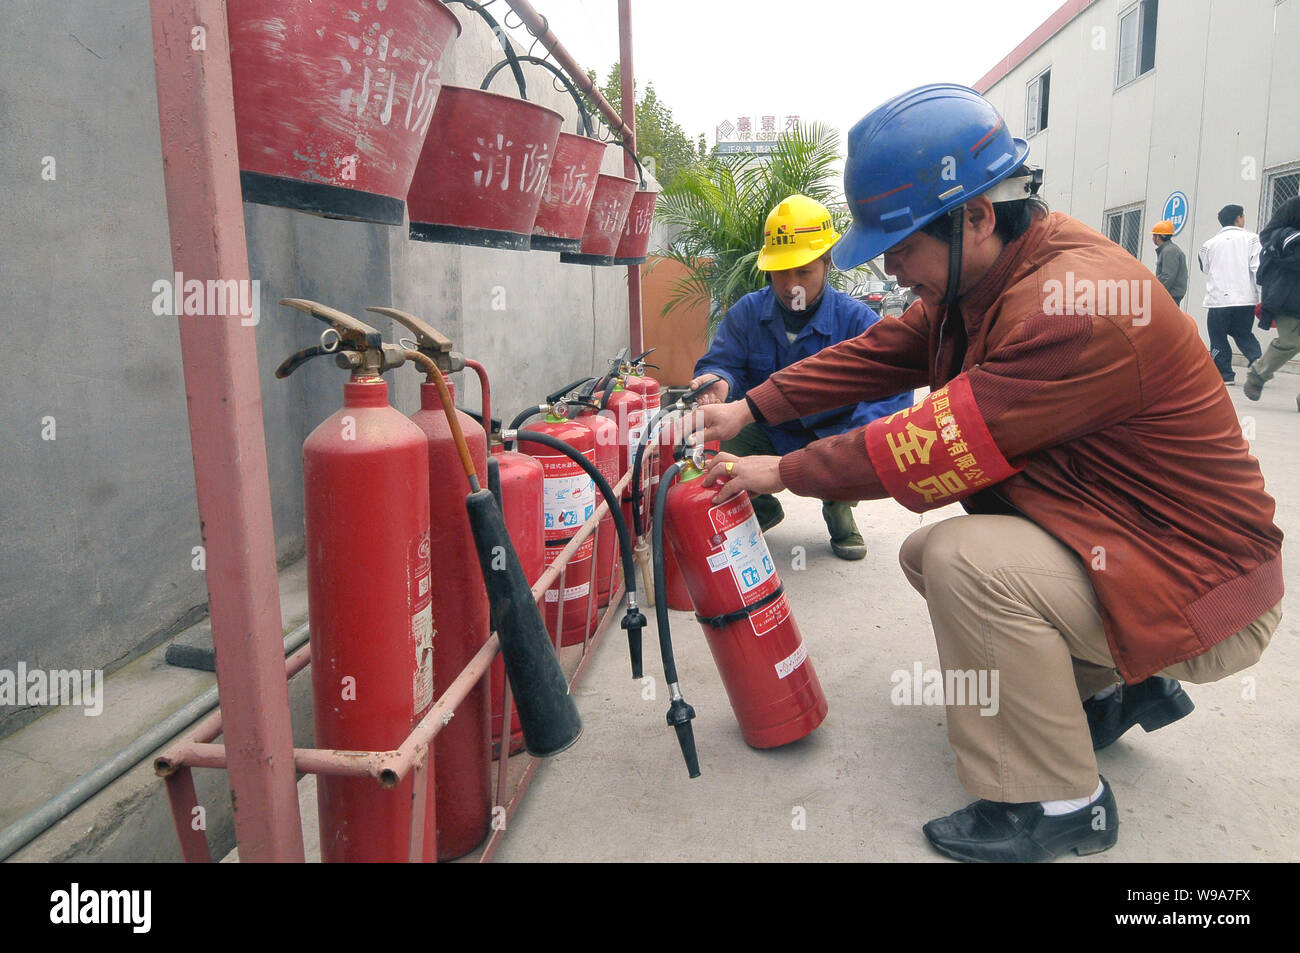 Chinese workers check the fire extinguishers and other